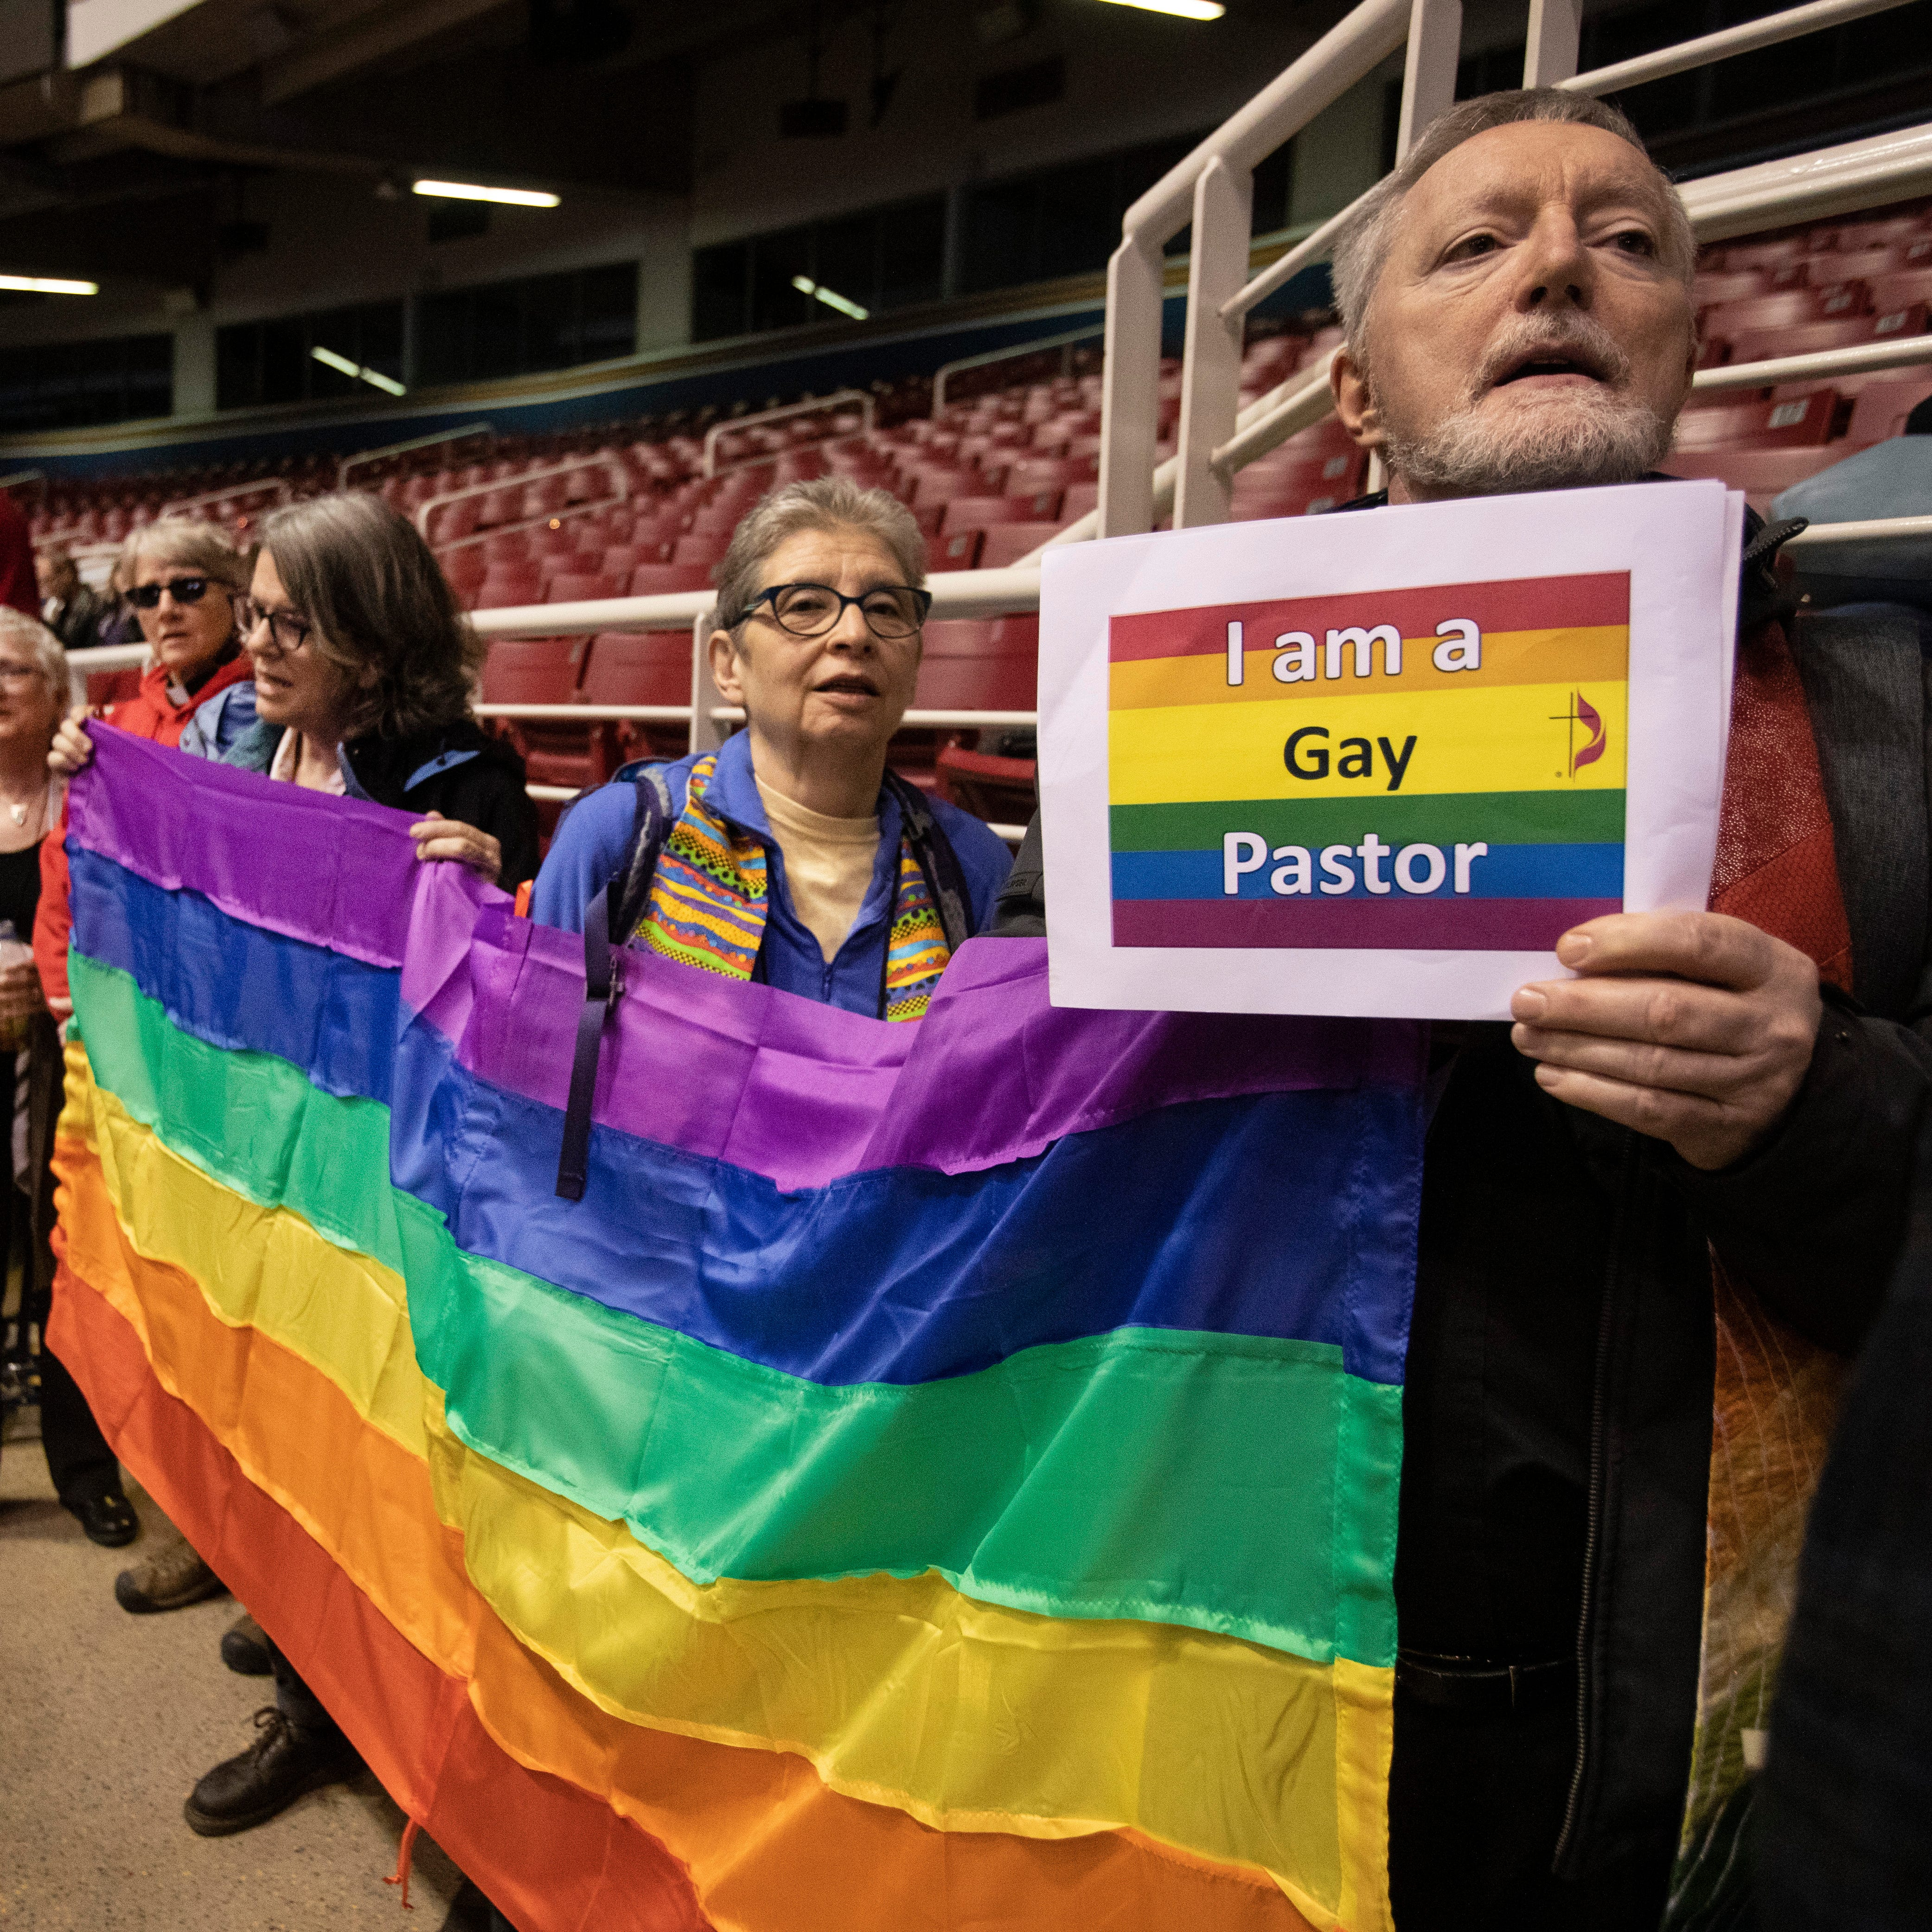 Global church ban on gay marriage sparks firestorm for area Methodists